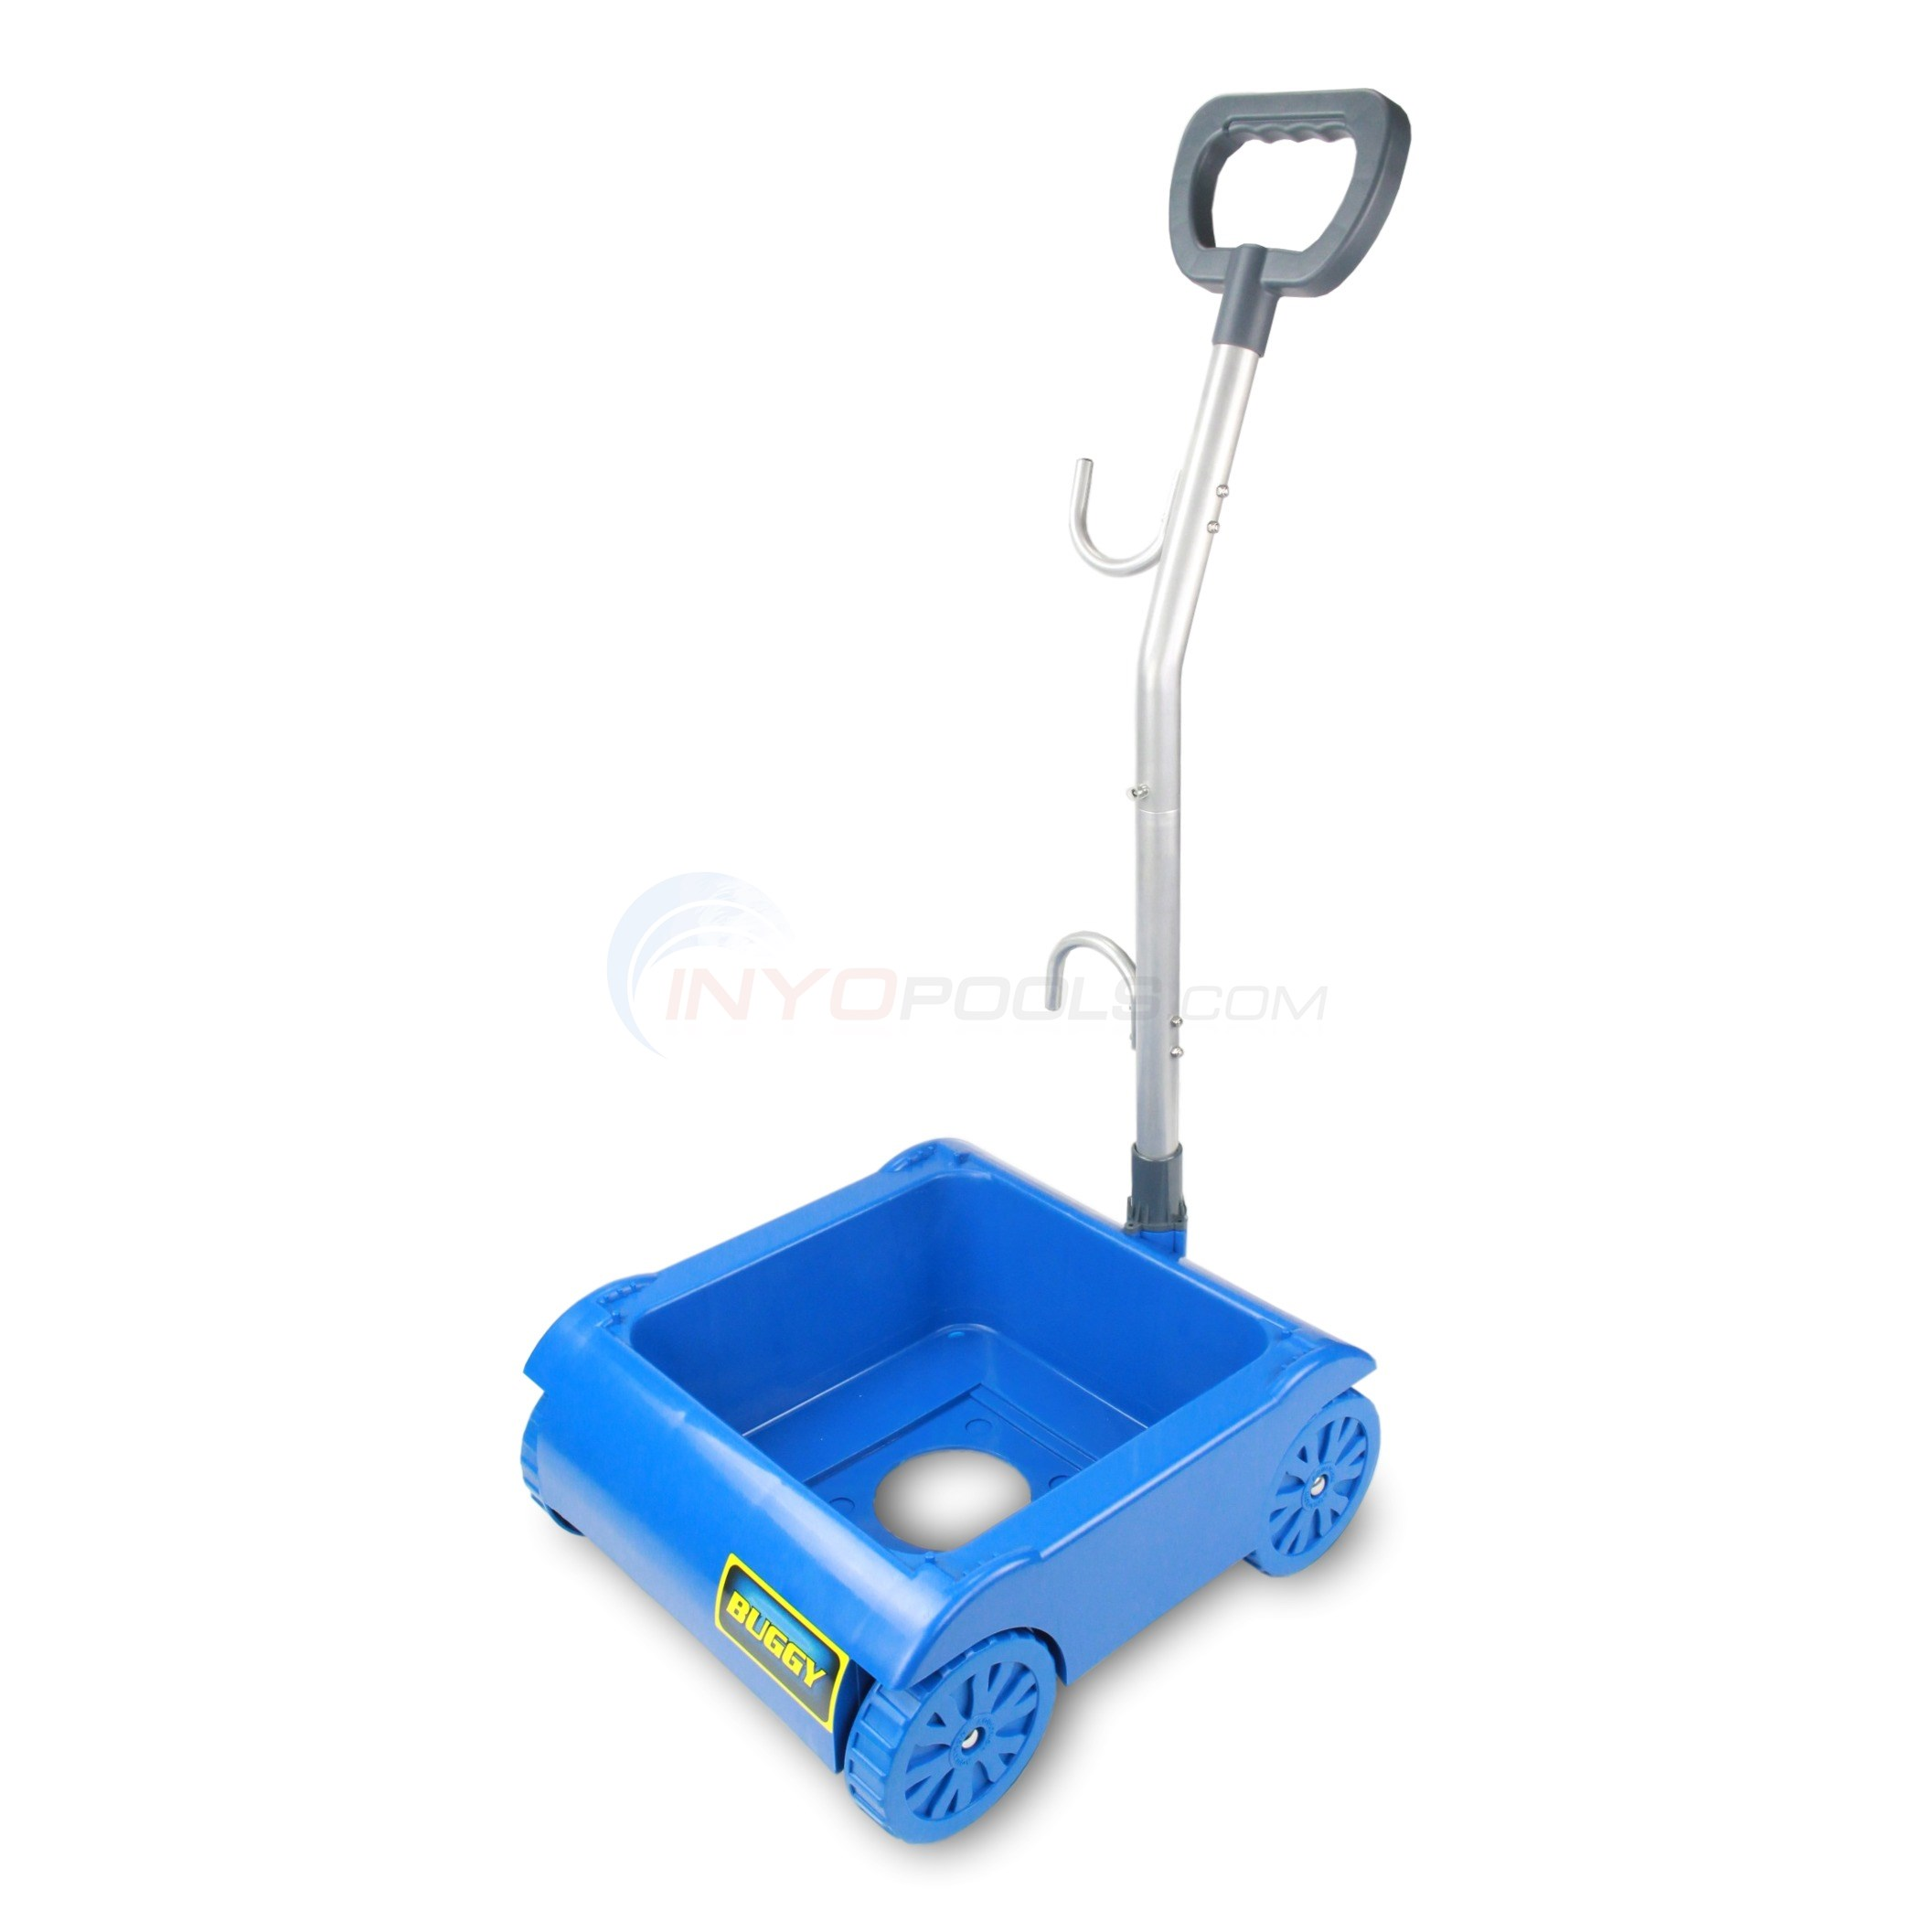 Aqua Products Aquabot T2 Robotic Pool Cleaner - AQT2